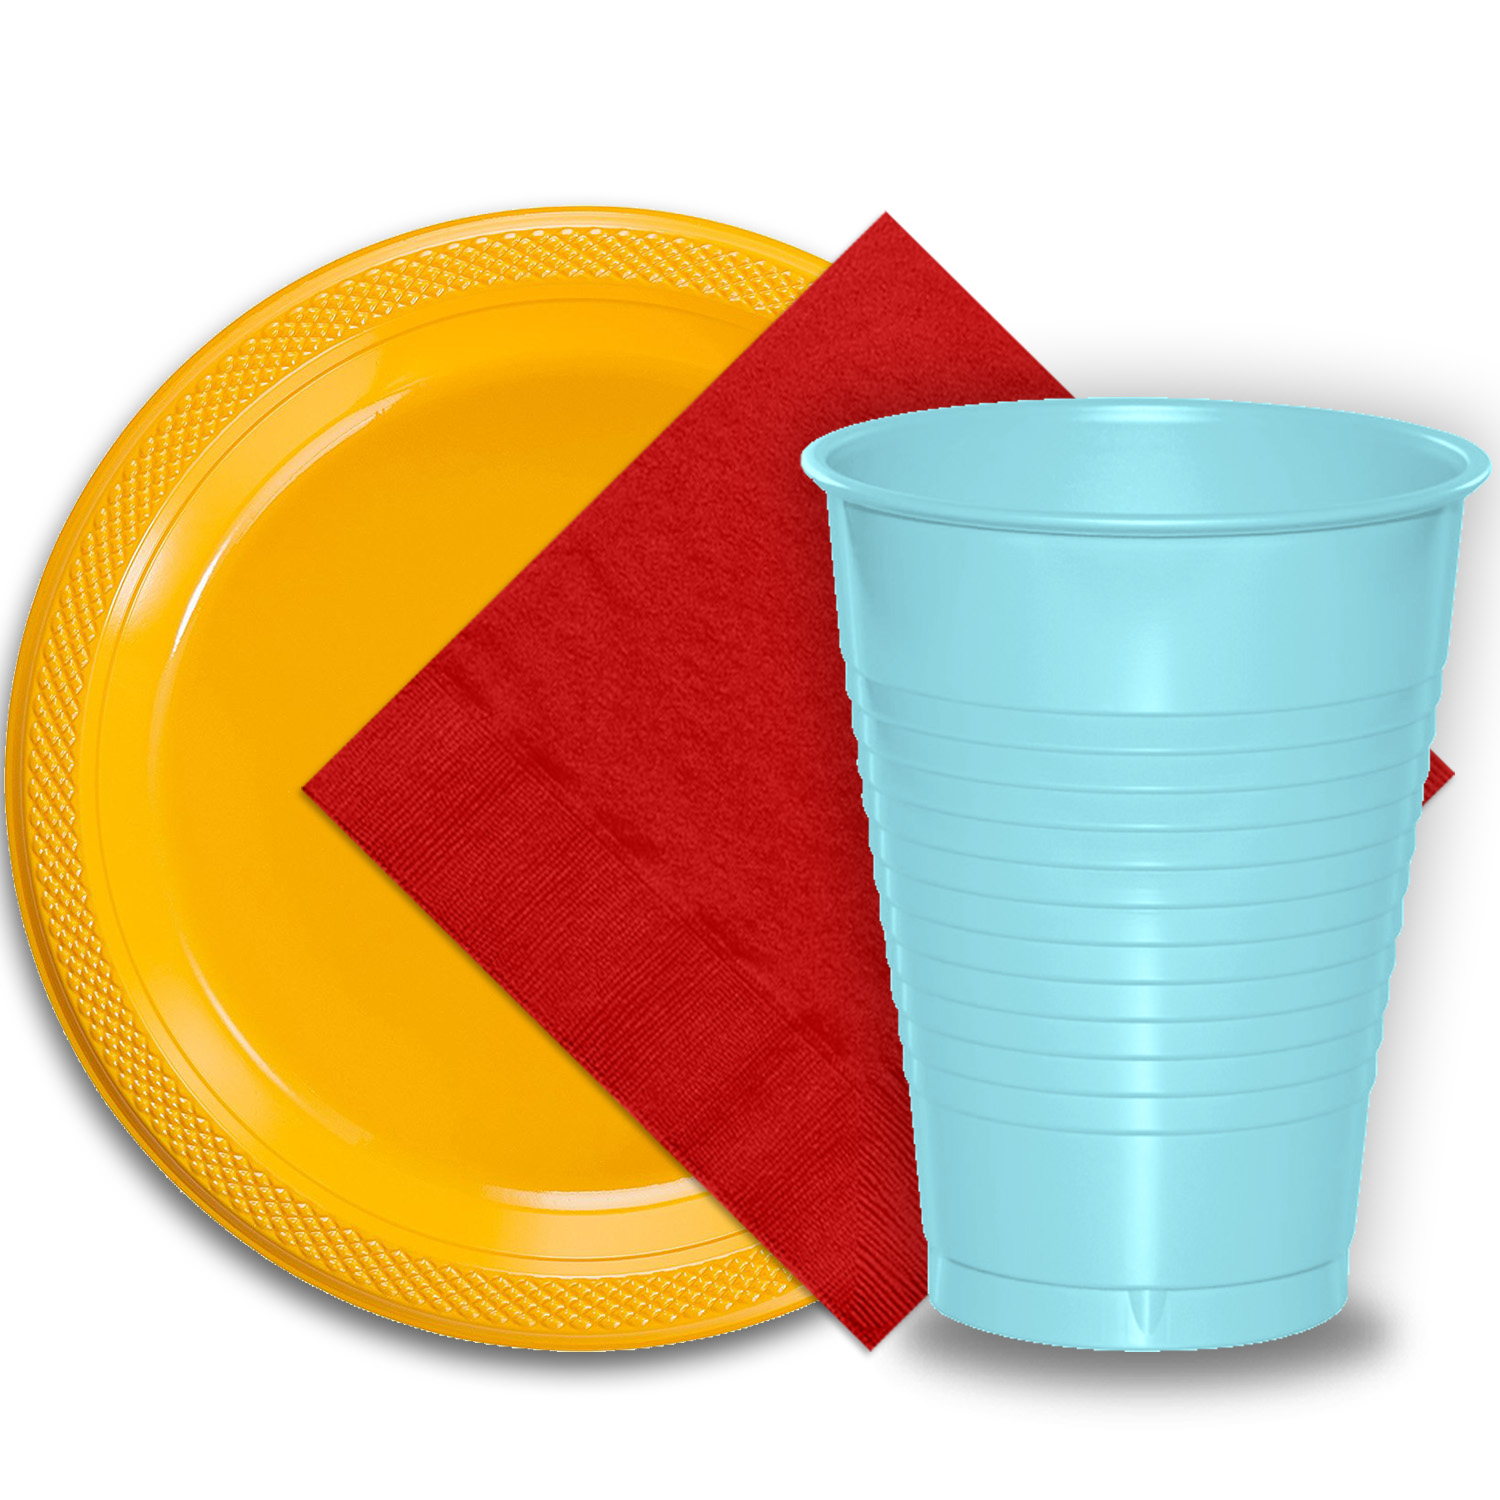 "50 Yellow Plastic Plates (9""), 50 Light Blue Plastic Cups (12 oz.), and 50 Red Paper Napkins, Dazzelling Colored Disposable Party Supplies Tableware Set for Fifty Guests."